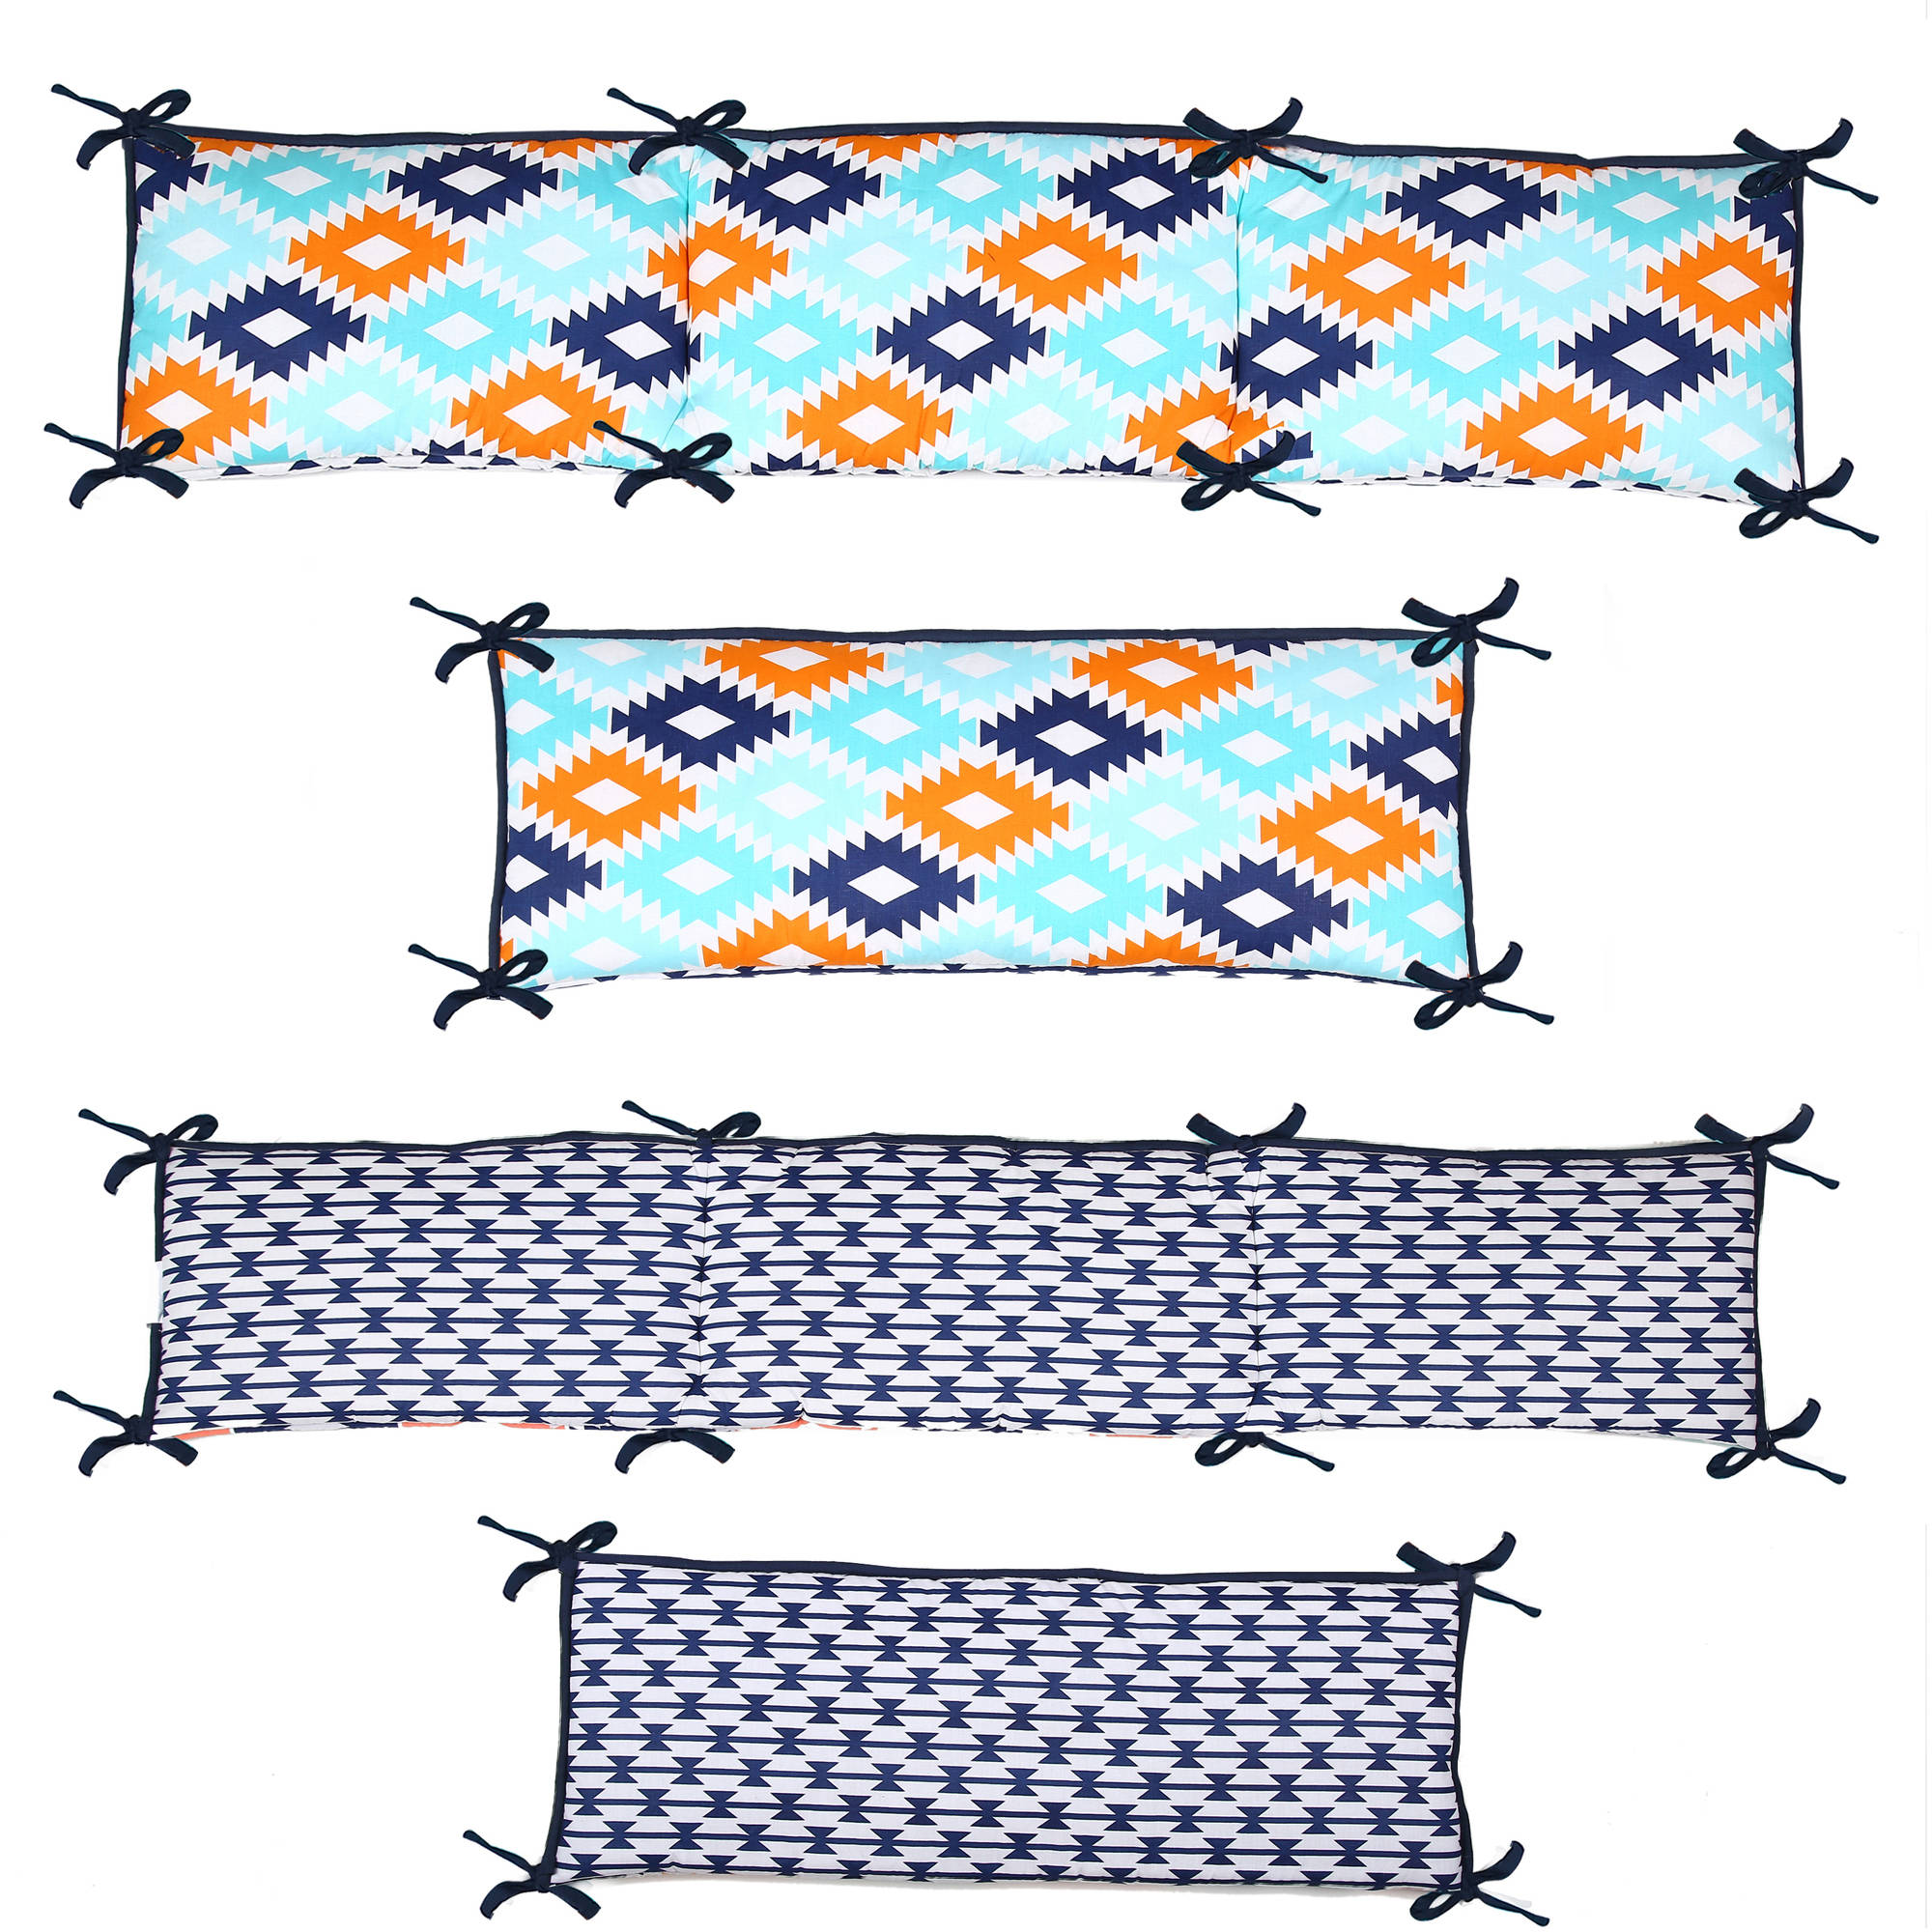 Bacati - Aztec 4-Piece 100% Cotton Percale Crib Secure-Me Bumper Pad, Liam Aqua/Orange/Navy